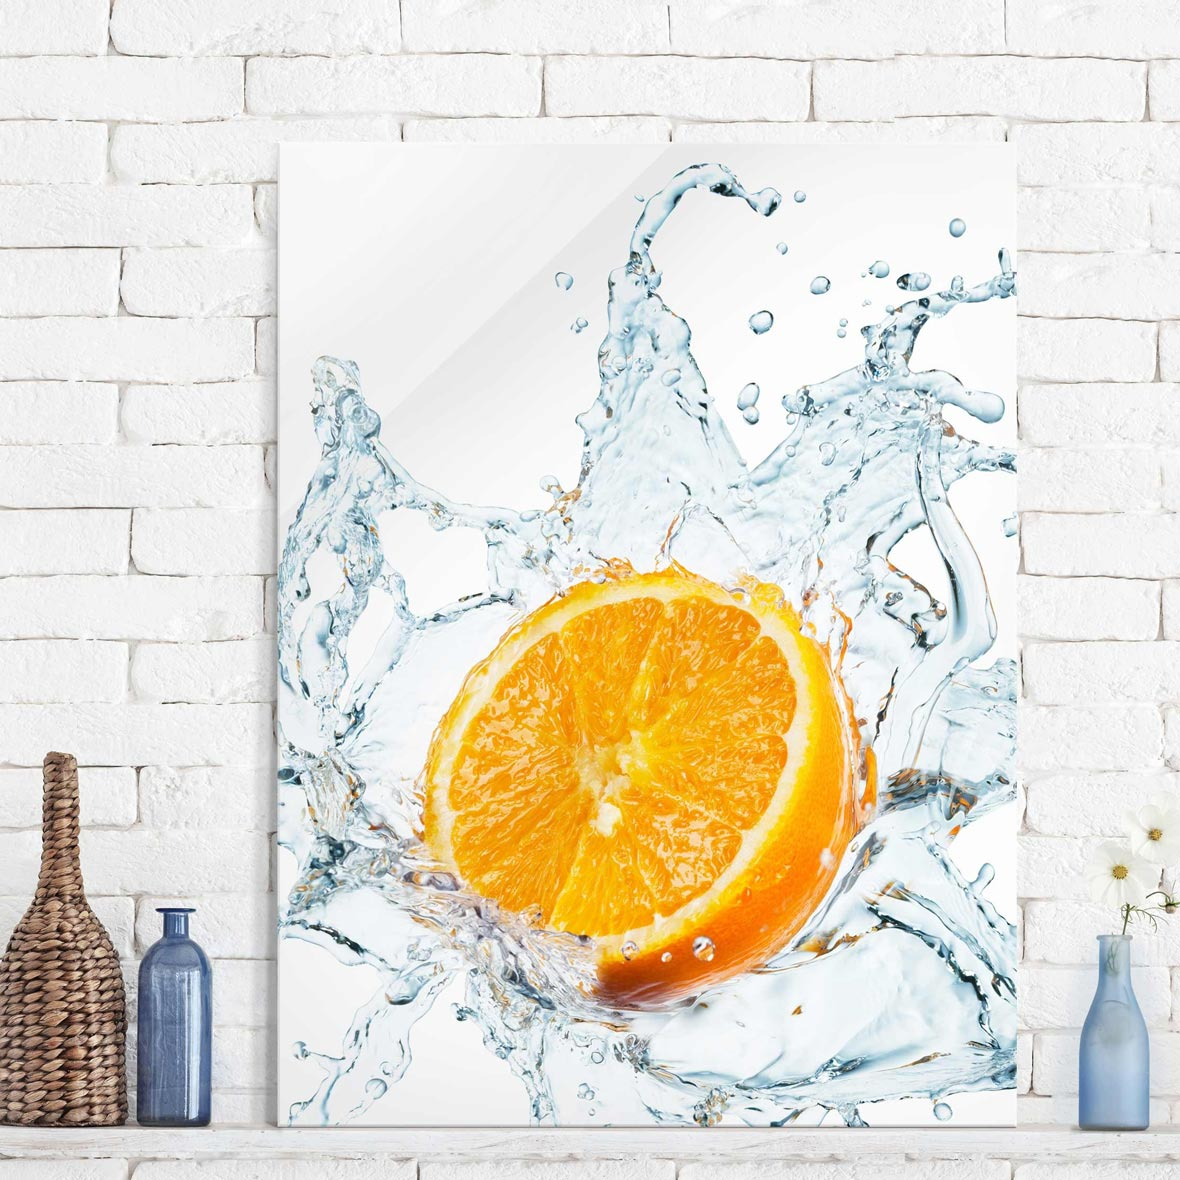 Glasbild Küche: Orange Küchenbild| Magazin Wallart.de